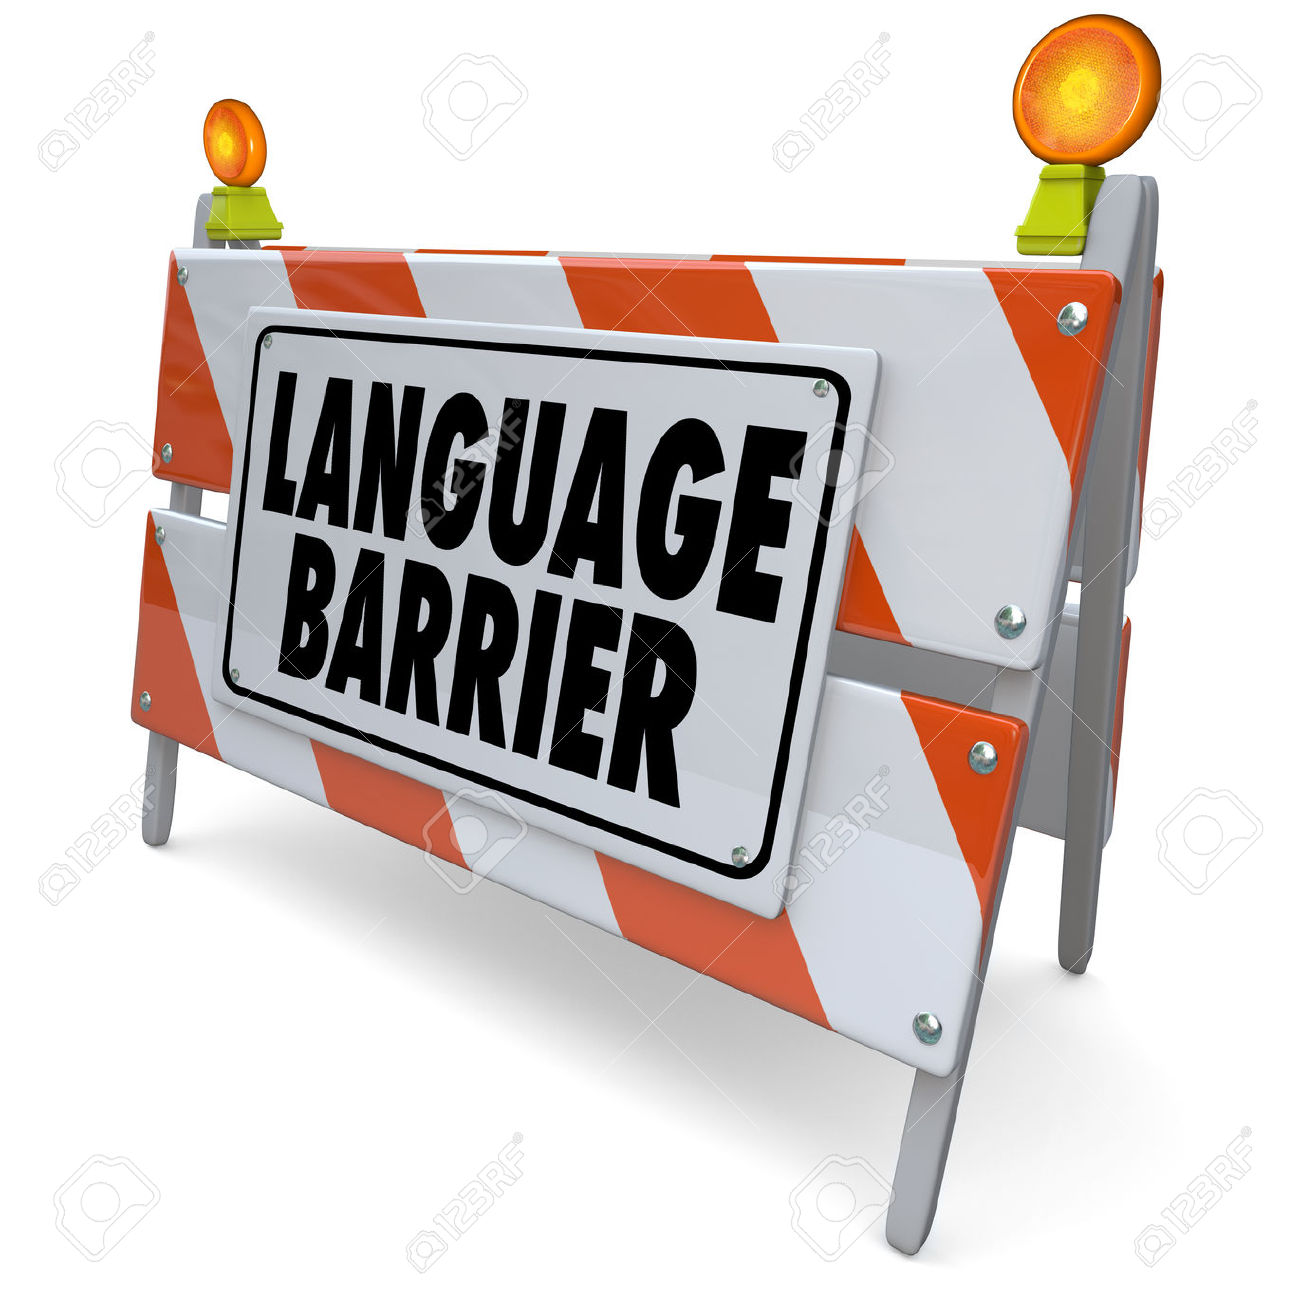 Communication barriers clipart.